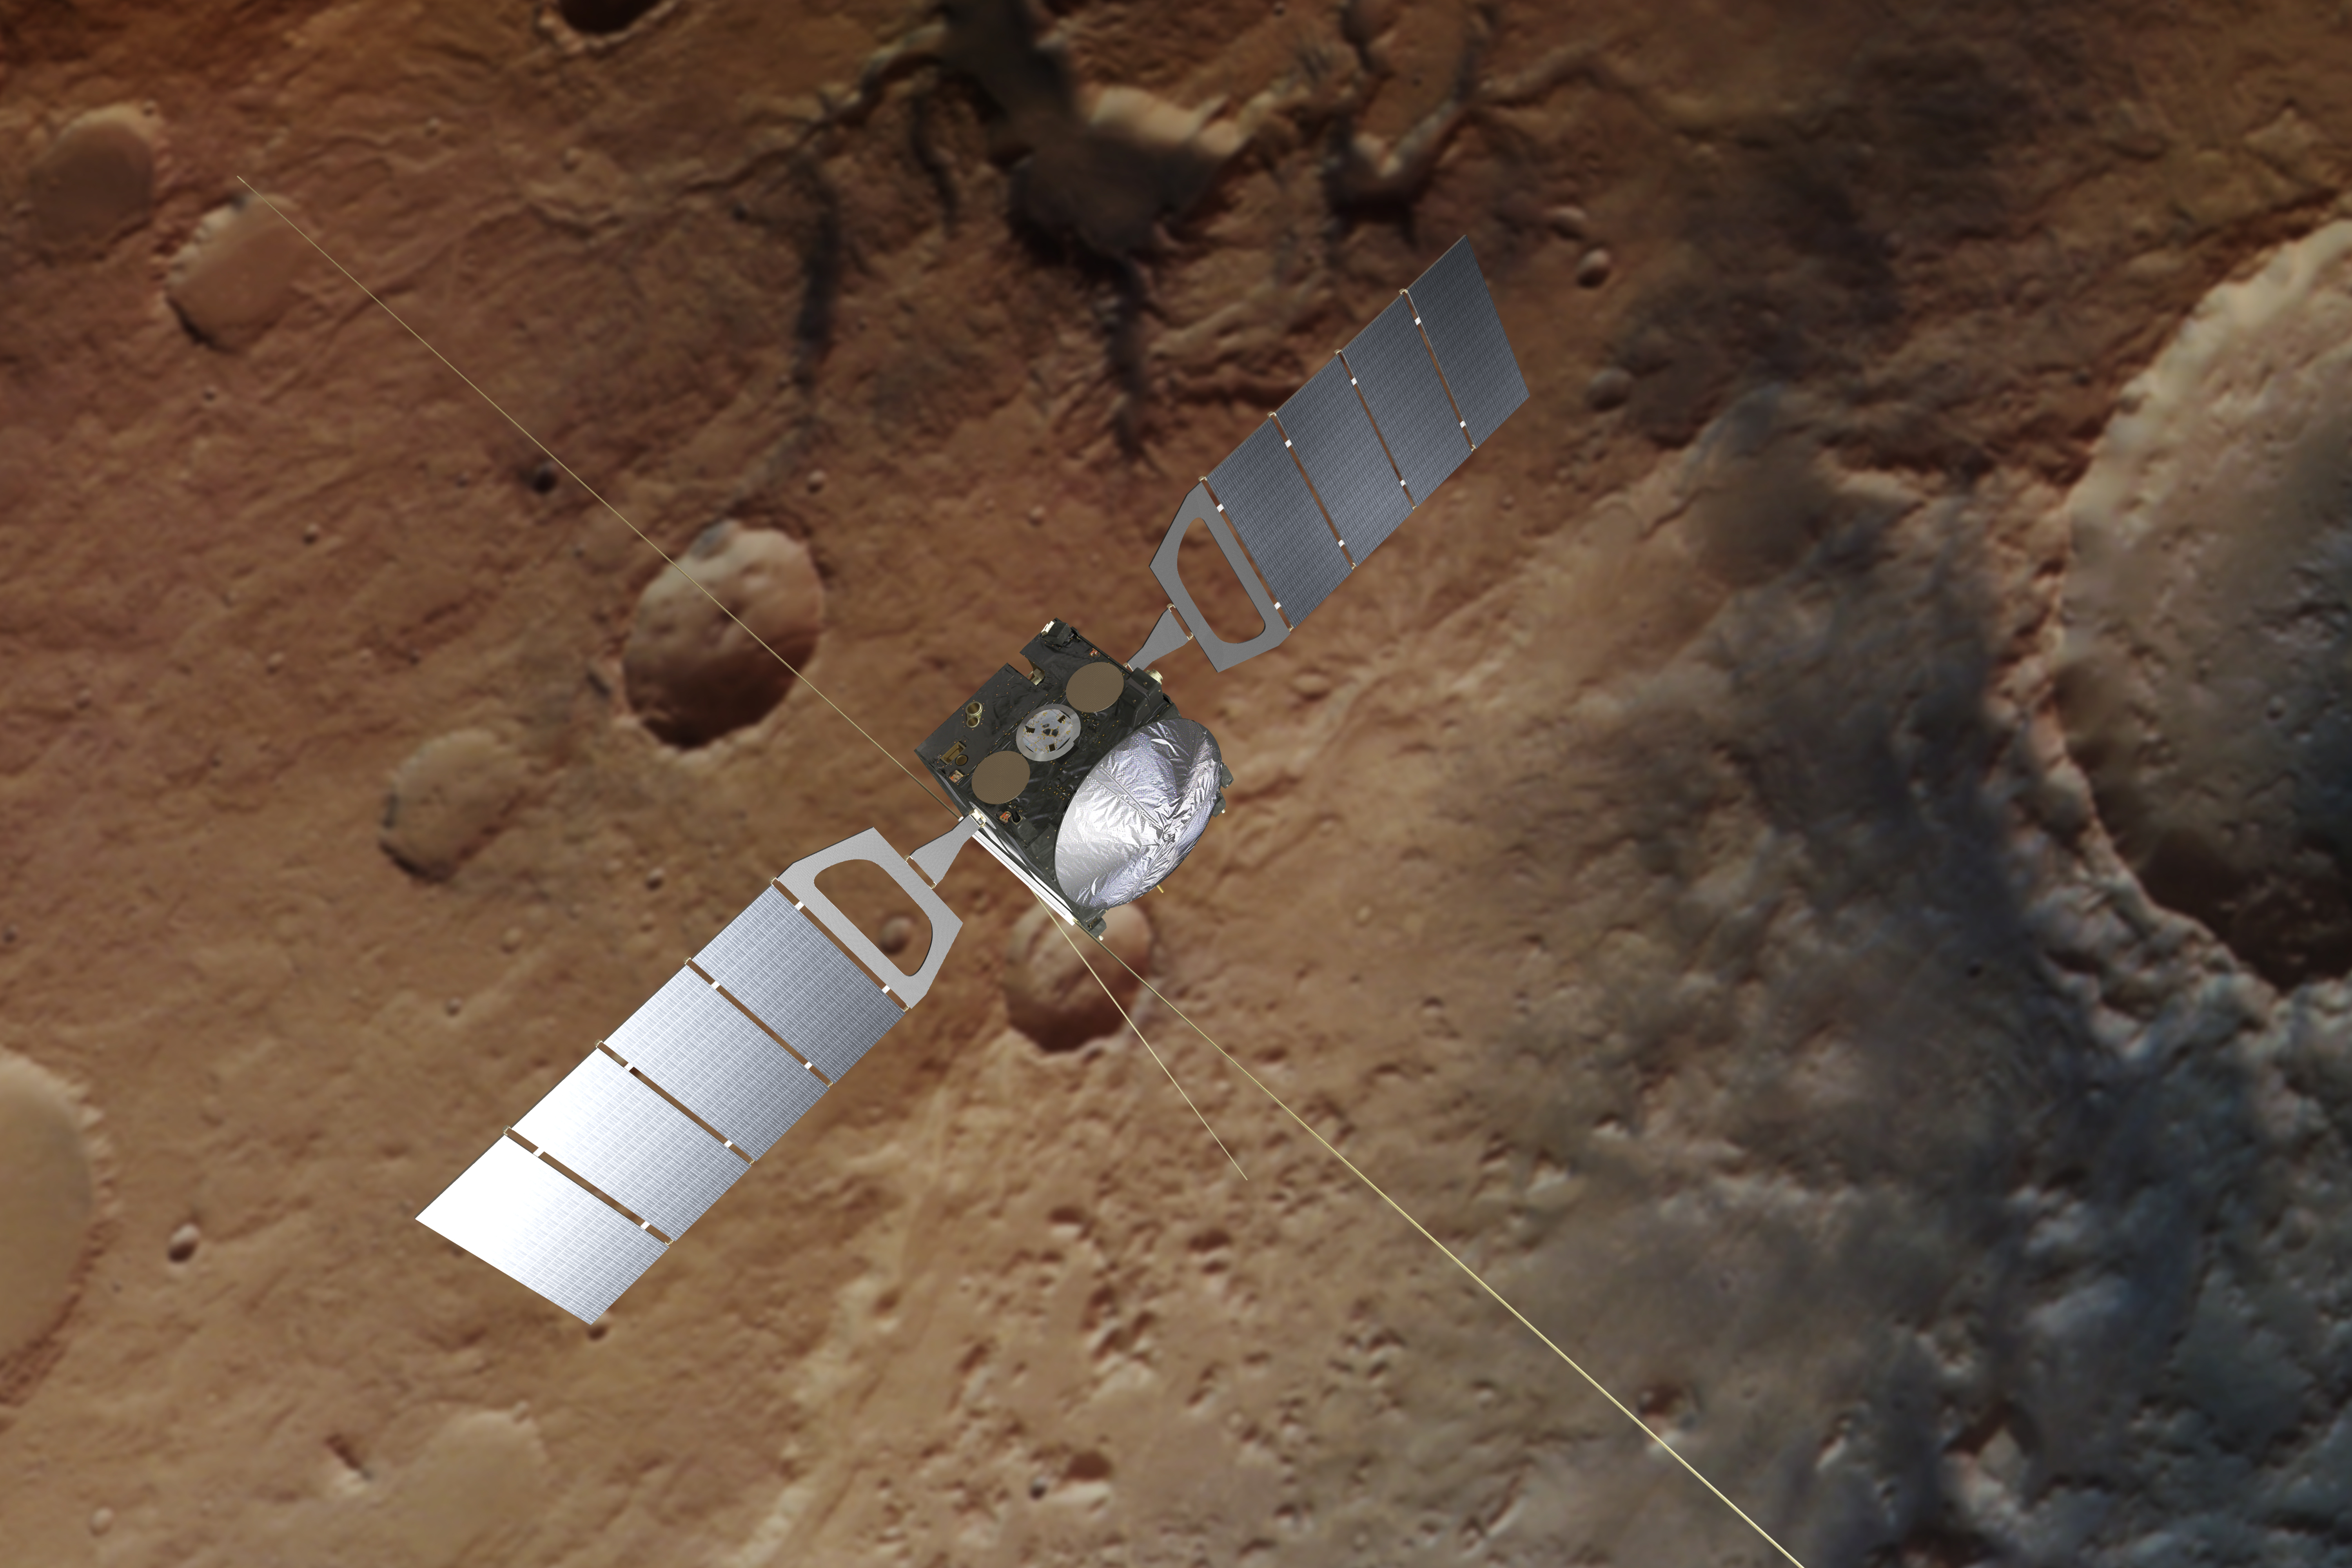 Artist impression of Mars Express (background based on an actual image of Mars taken by the spacecraft's high resolution stereo camera). Image credit - Spacecraft: ESA/ATG medialab; Mars: ESA/DLR/FU Berlin, CC BY-SA 3.0 IGO